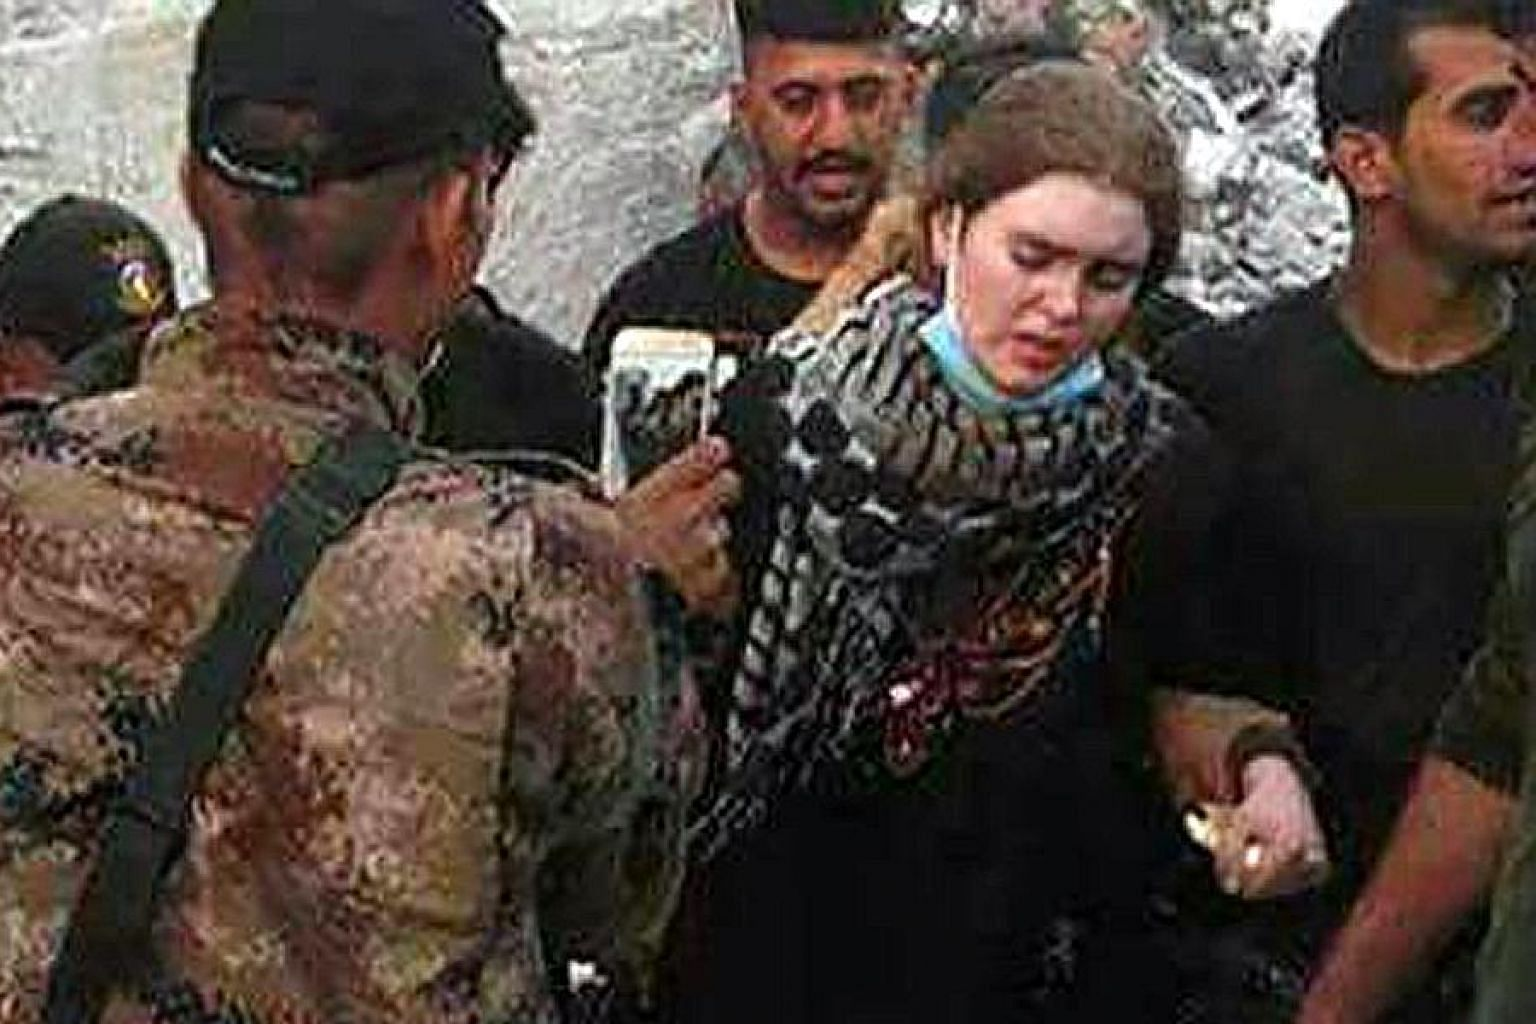 A picture circulating on social media purports to show a captured Linda Wenzel, a German national, in the Iraqi city of Mosul.